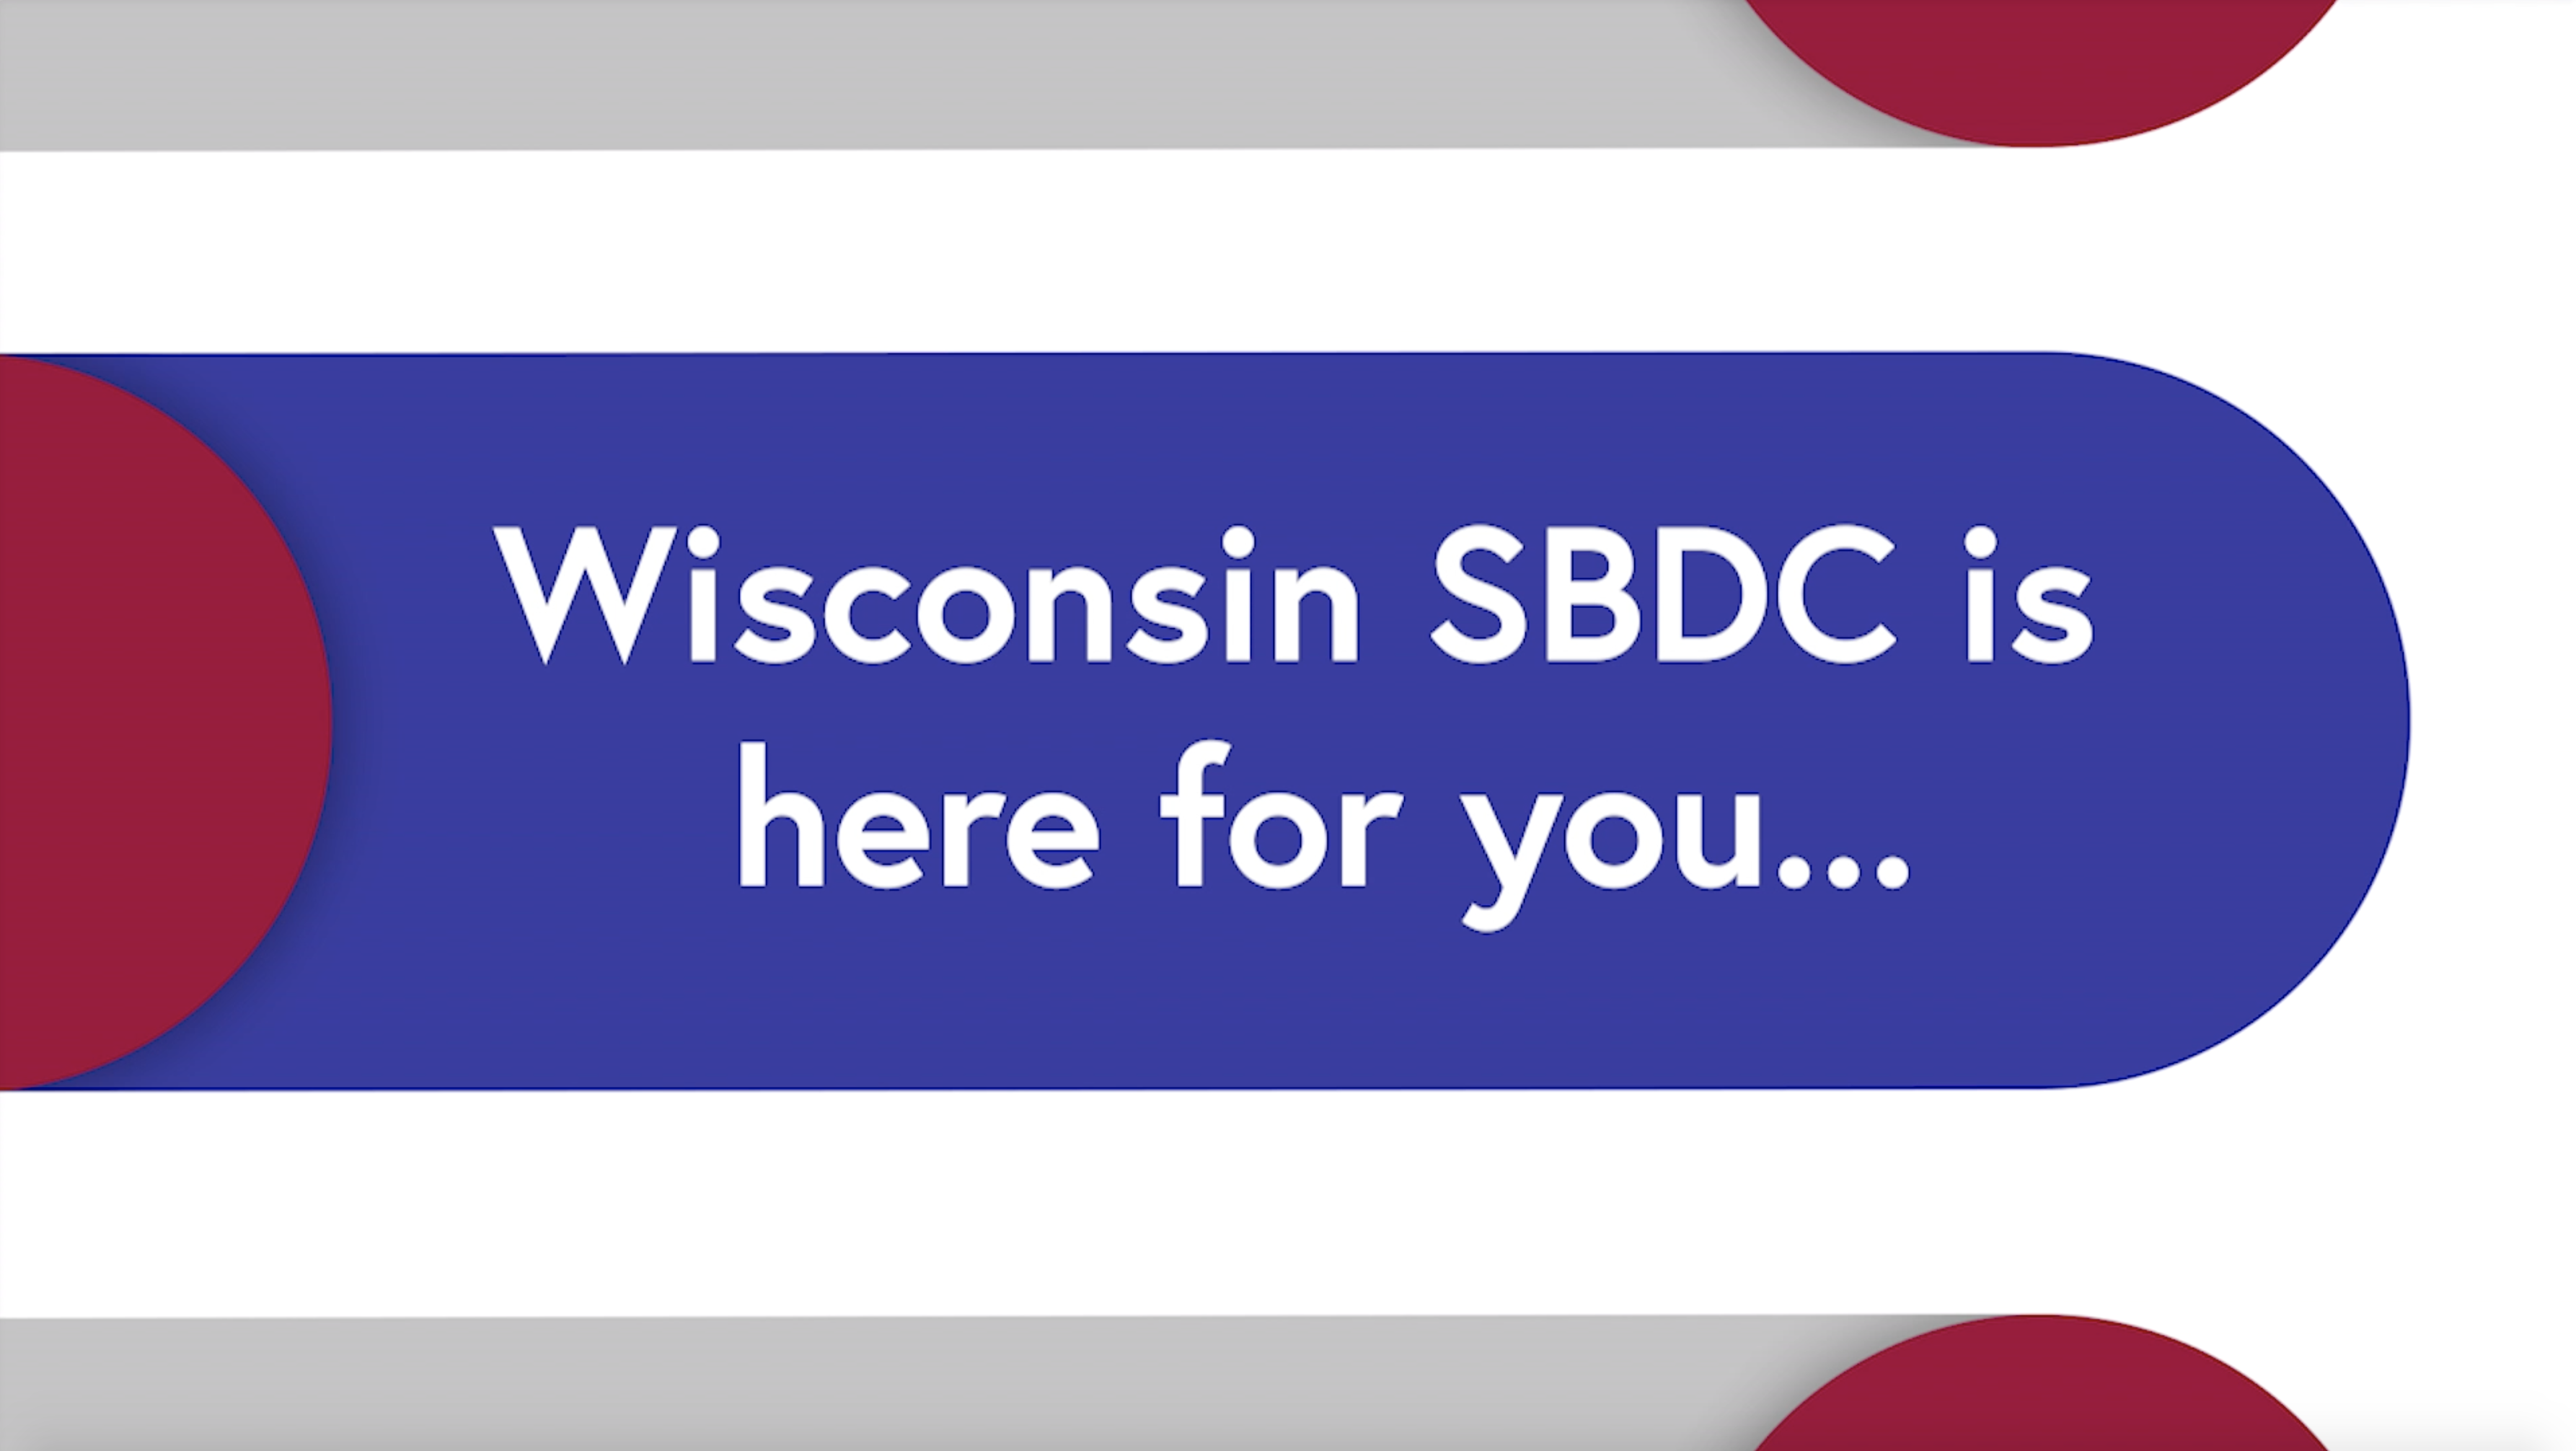 """We're Still Here"" video thumbnail which reads ""Wisconsin SBDC is here for you..."""